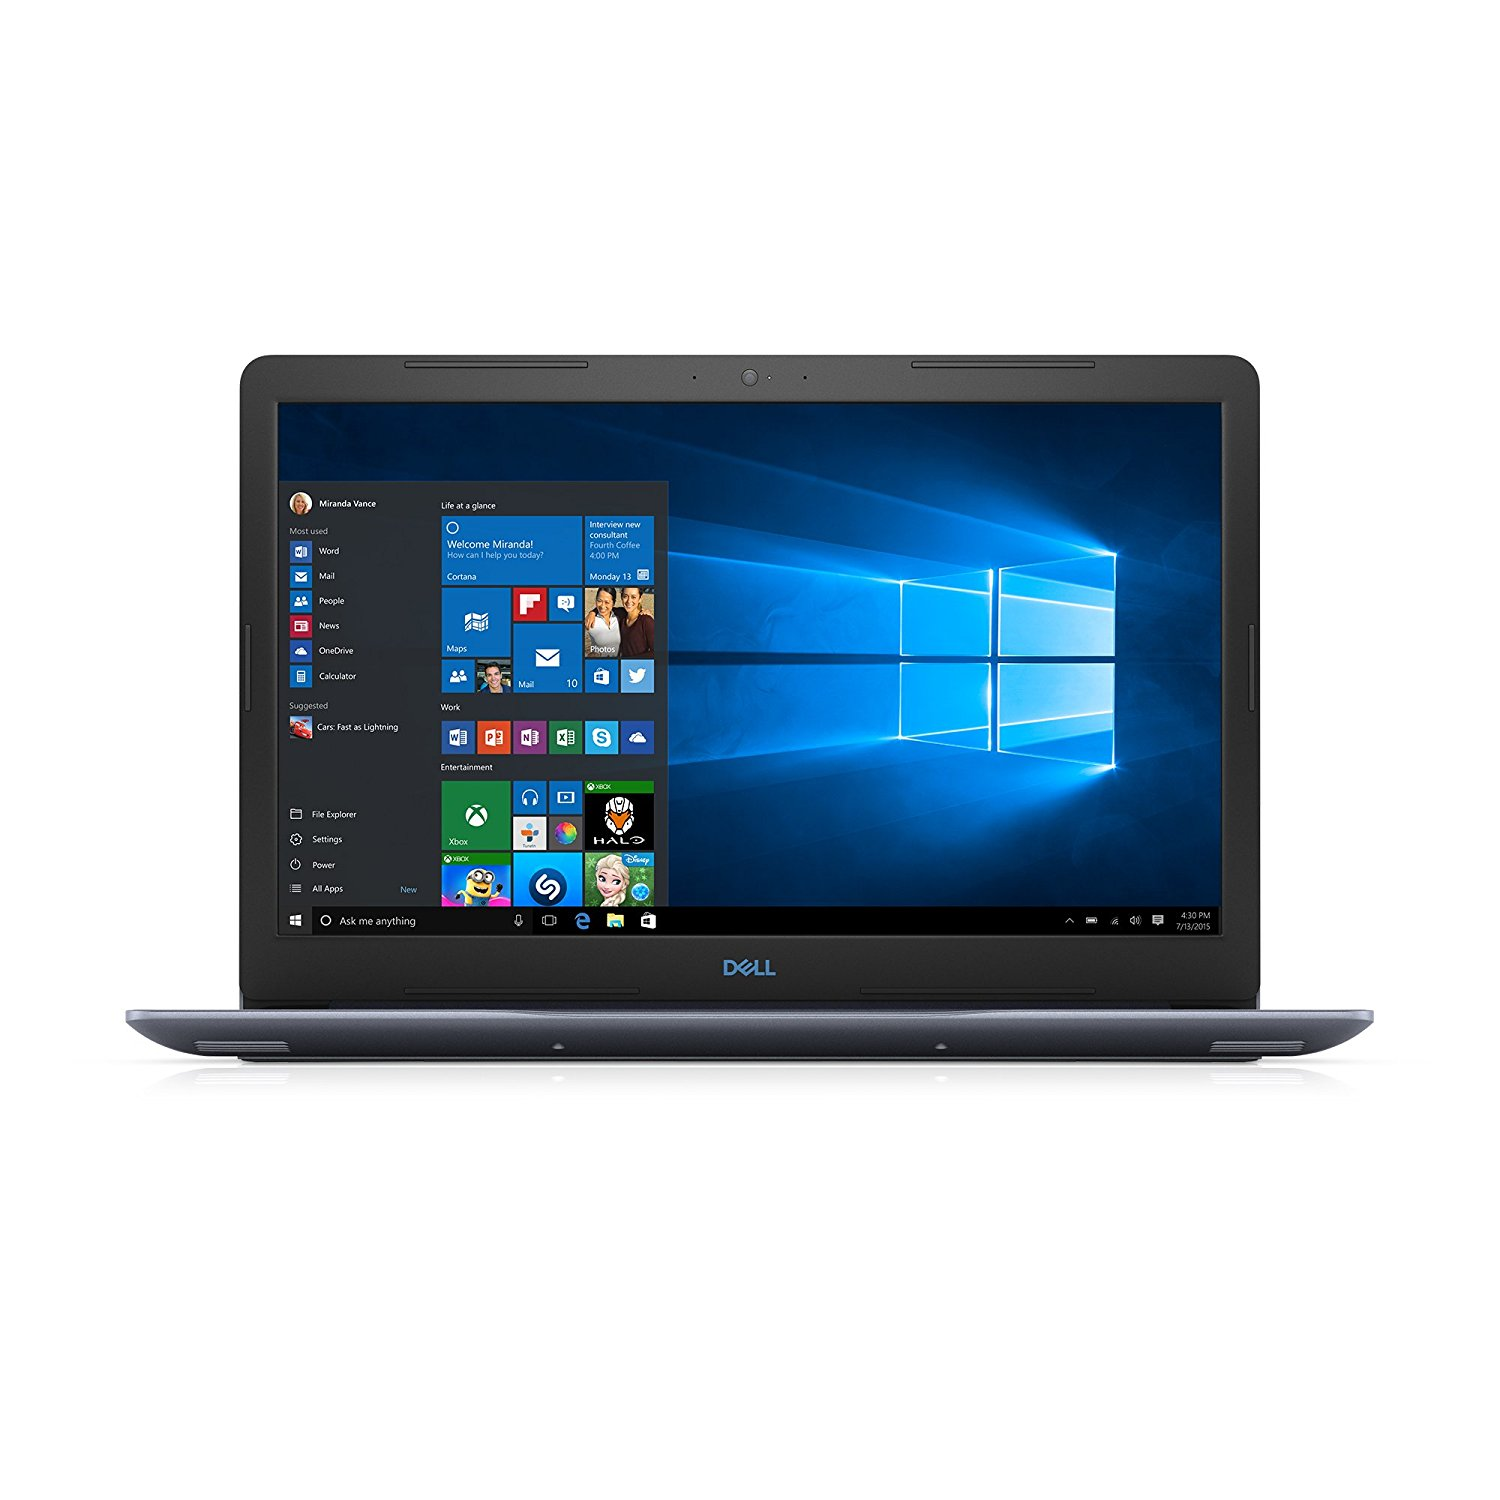 Notebook Dell G3 3779 17.3 Full HD Intel Core i7-8750H GTX 1050 Ti-4GB RAM 16GB HDD 1TB + SSD 128GB Linux